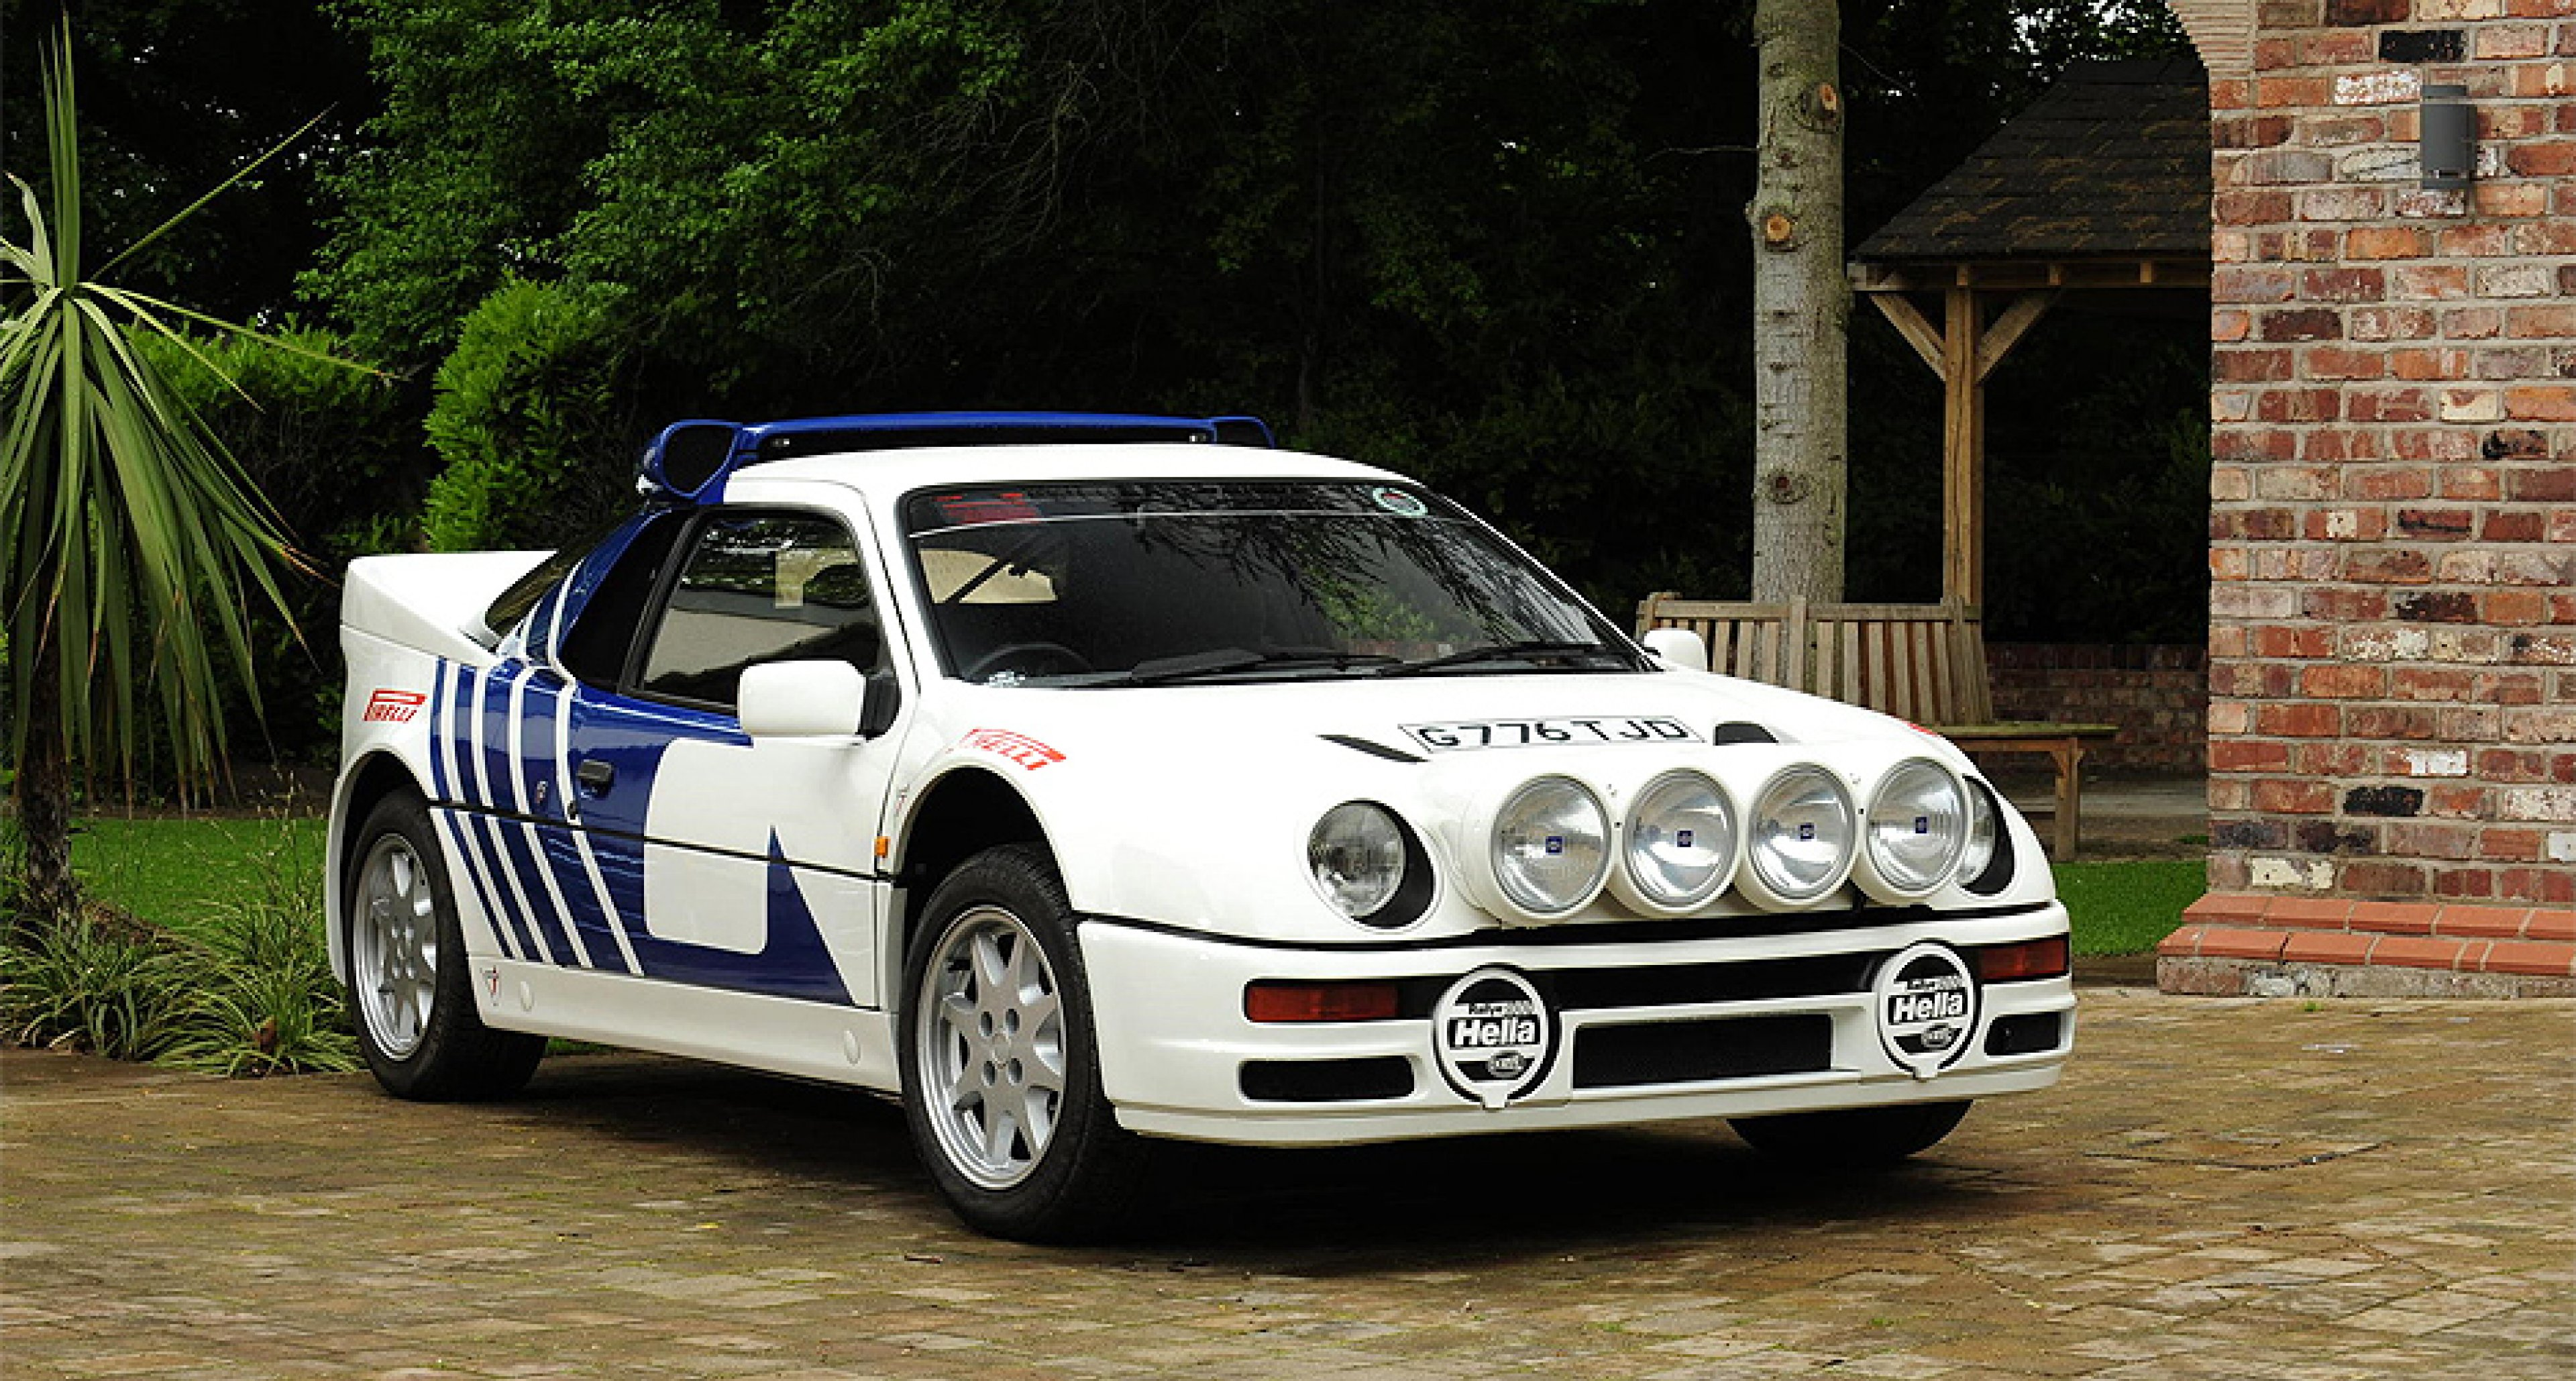 1989 Ford RS200 Coupé (GBP 80,000 - 100,000)